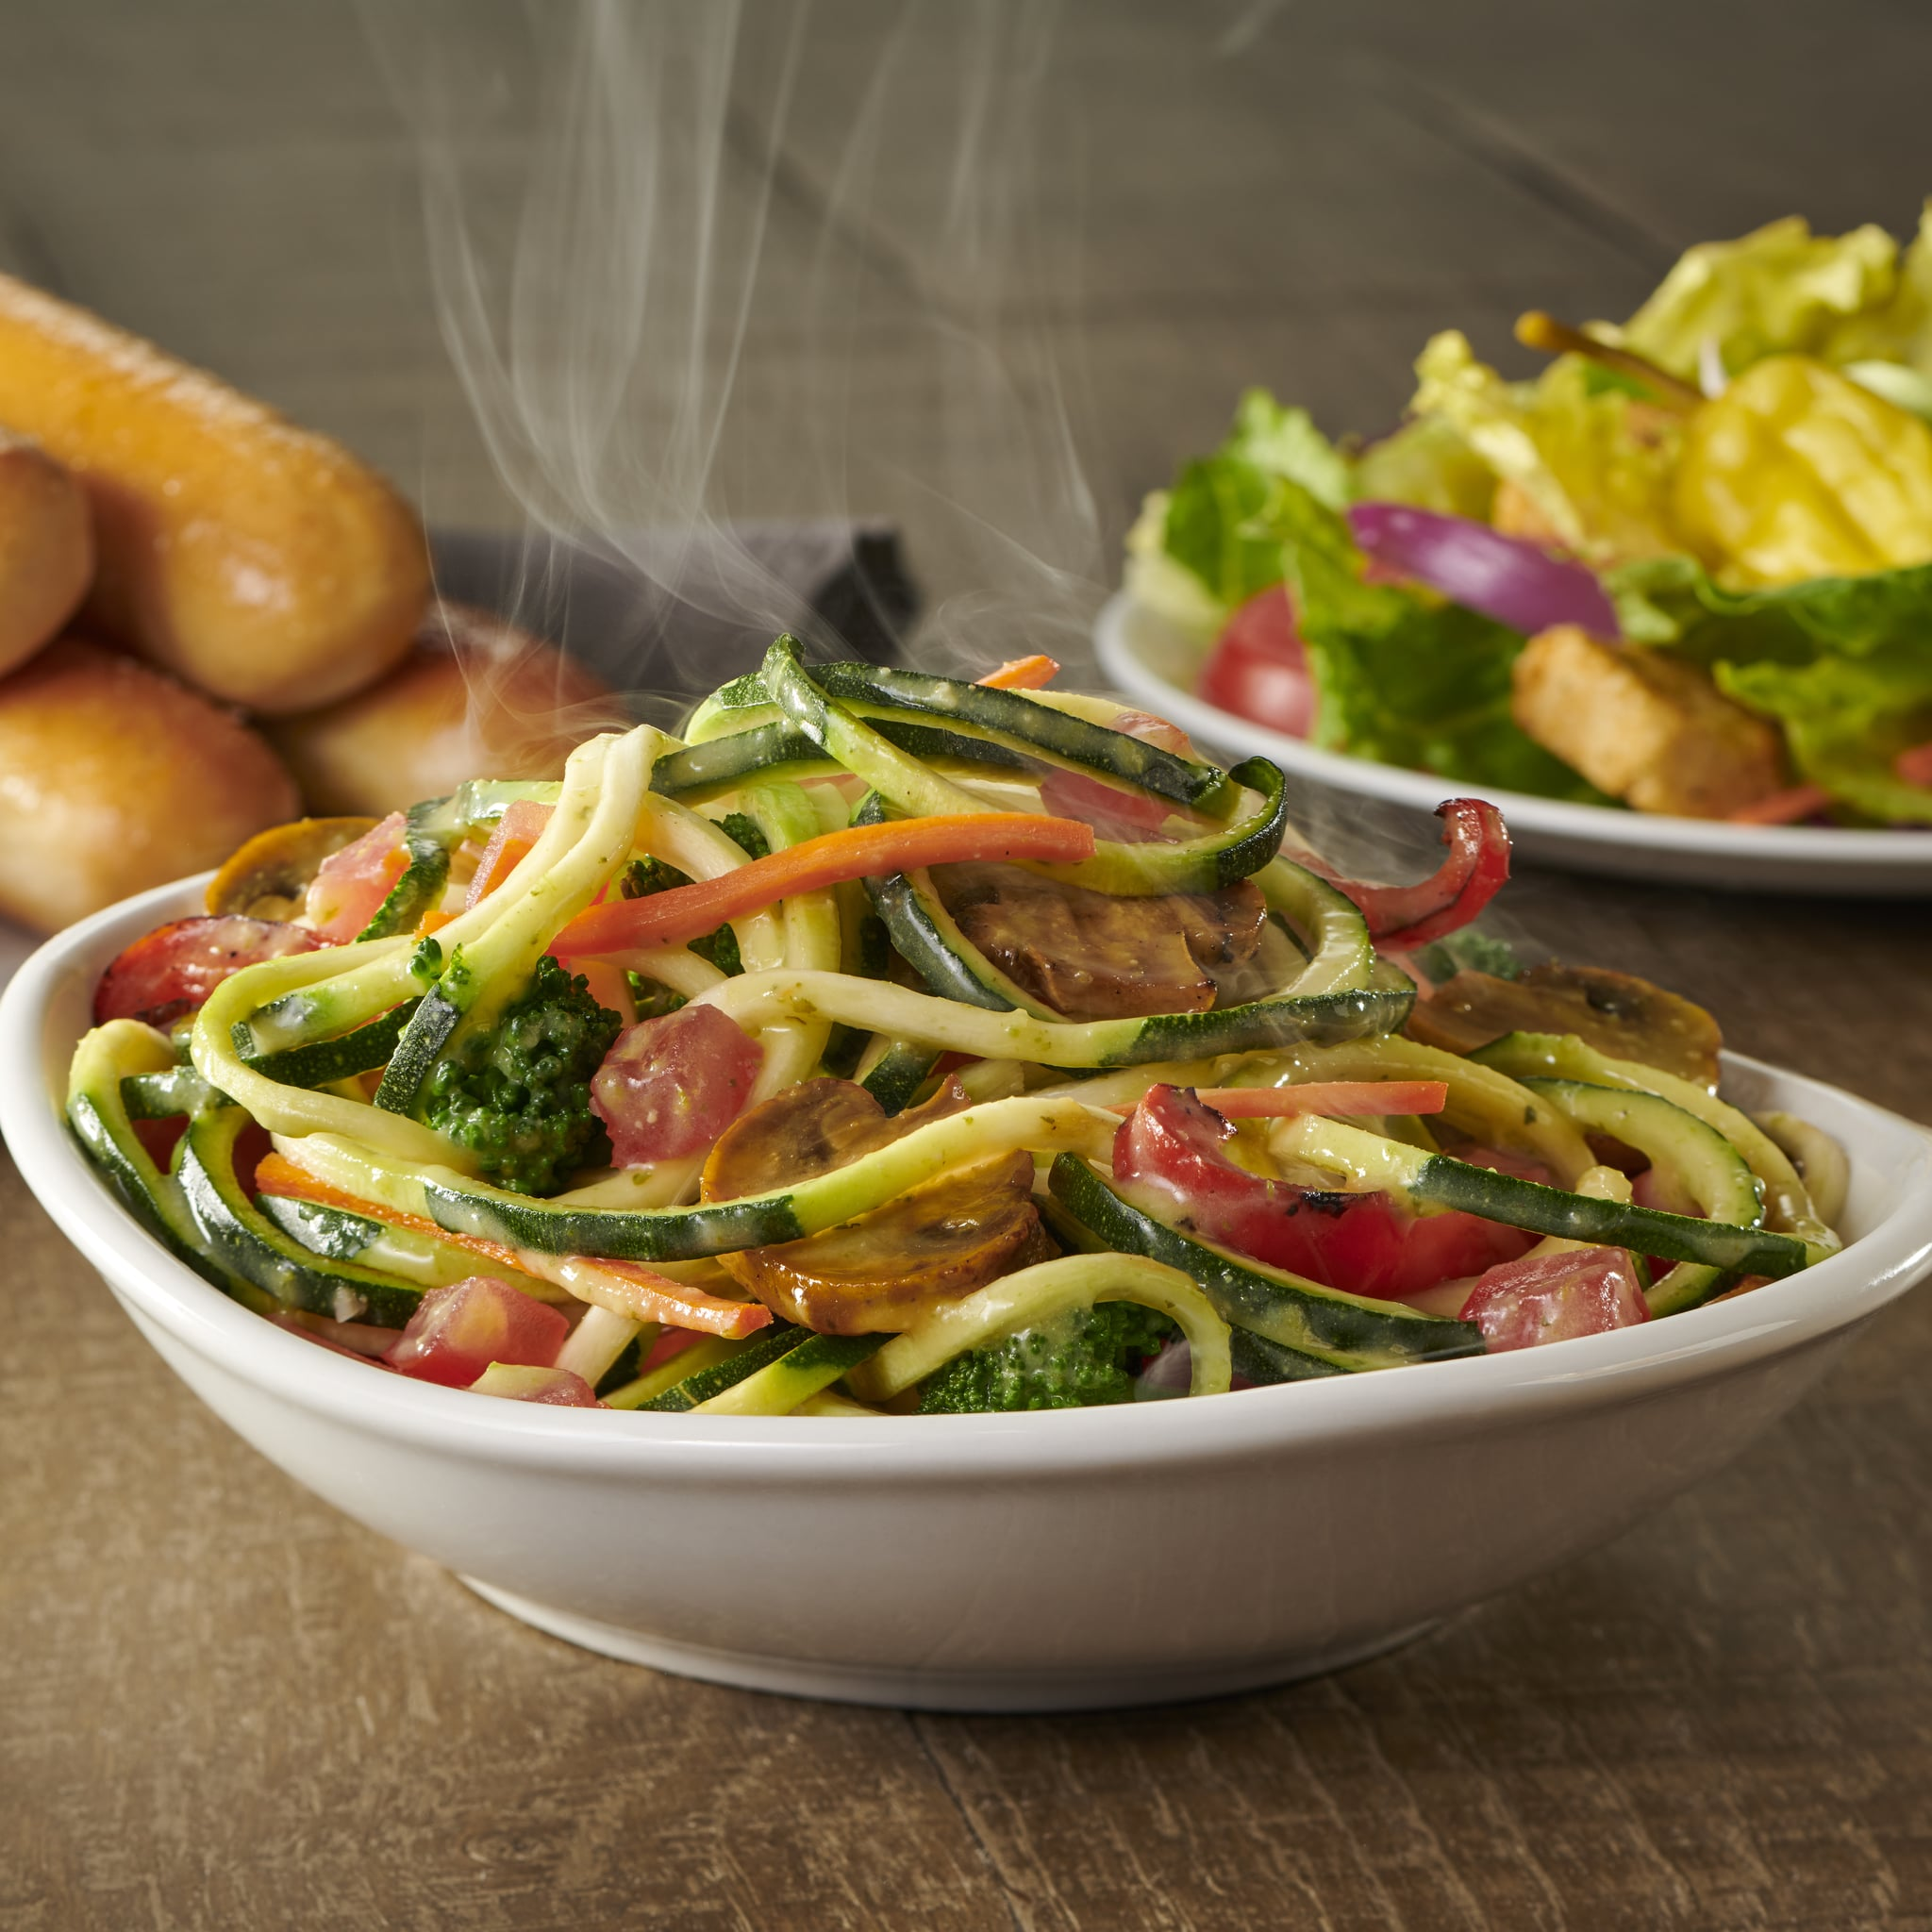 Olive garden zoodles